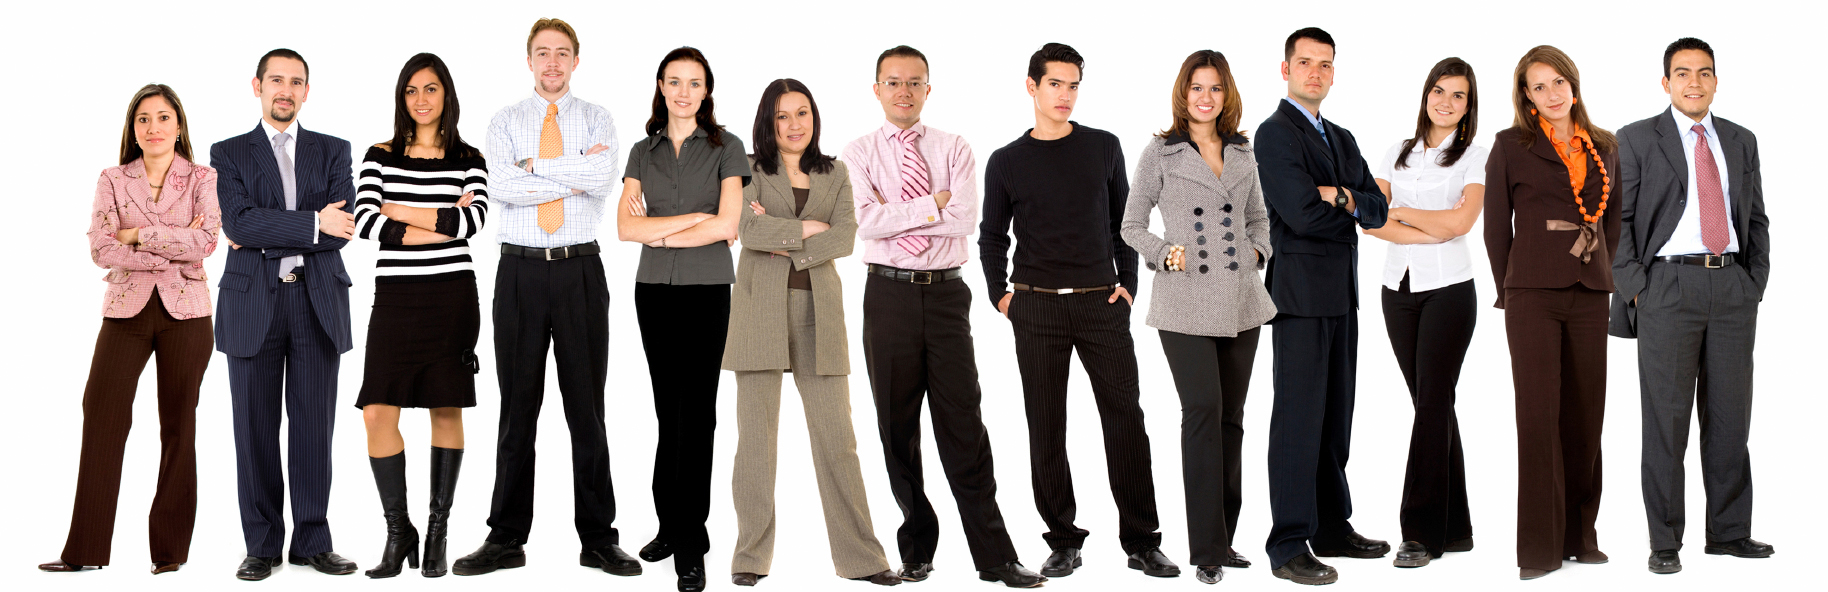 business-people-group-2